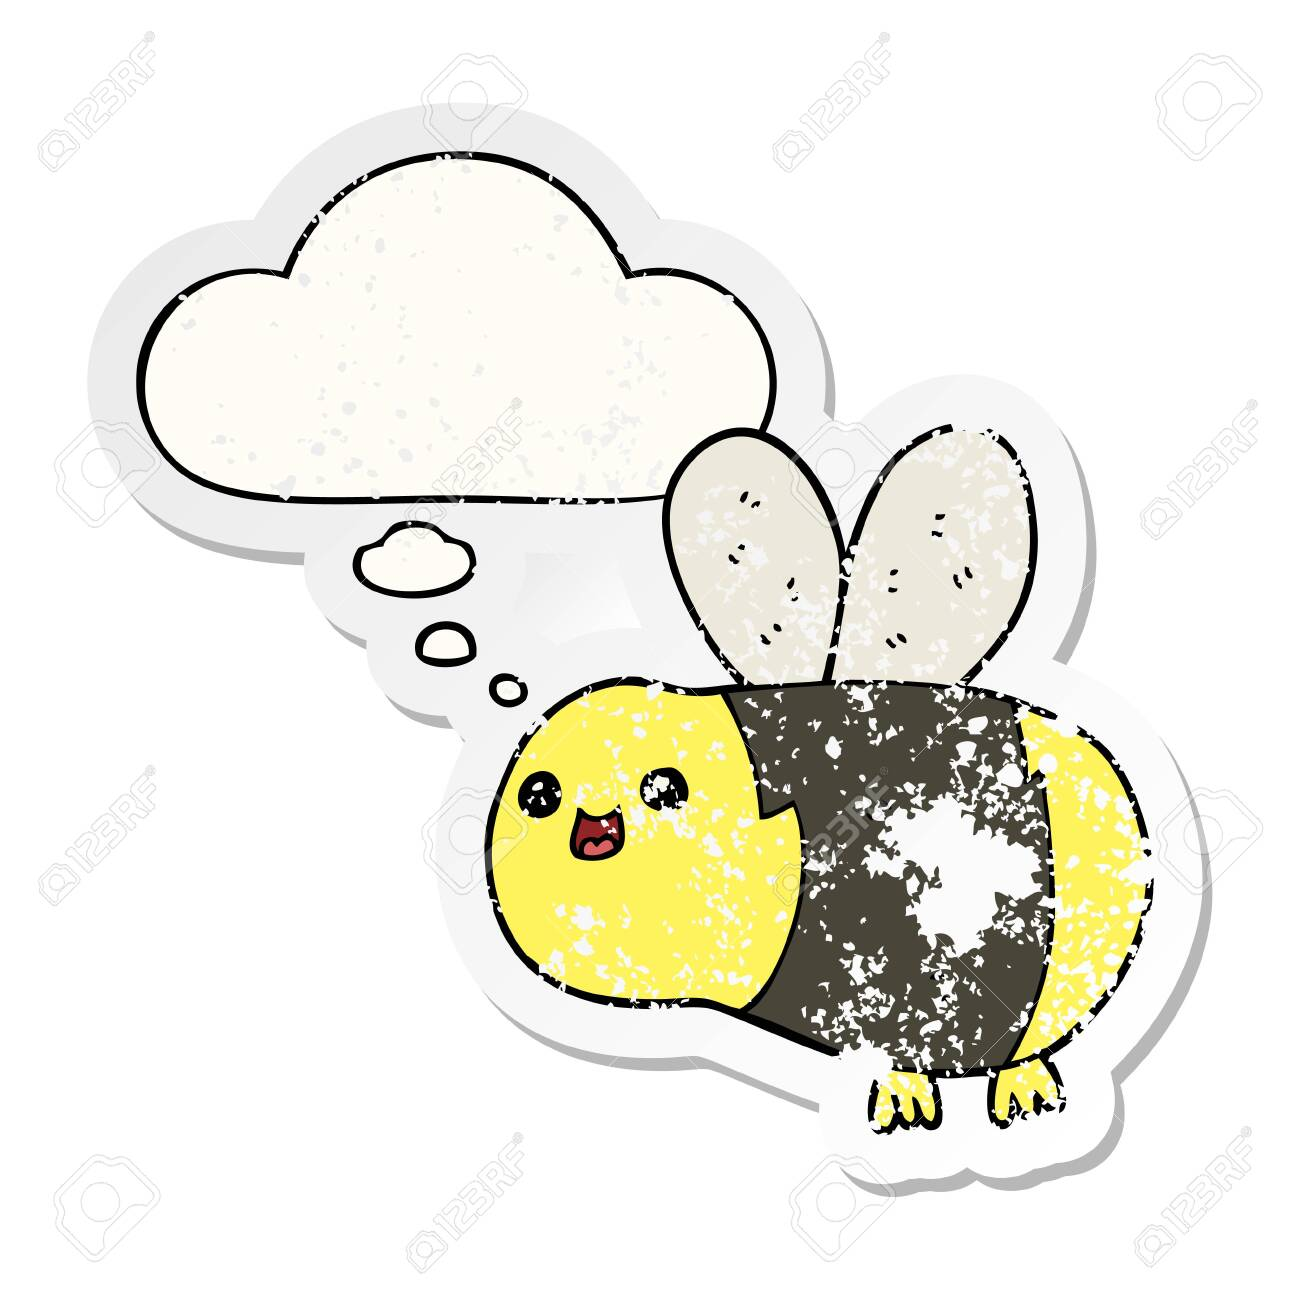 cartoon bee with thought bubble as a distressed worn sticker - 128821812